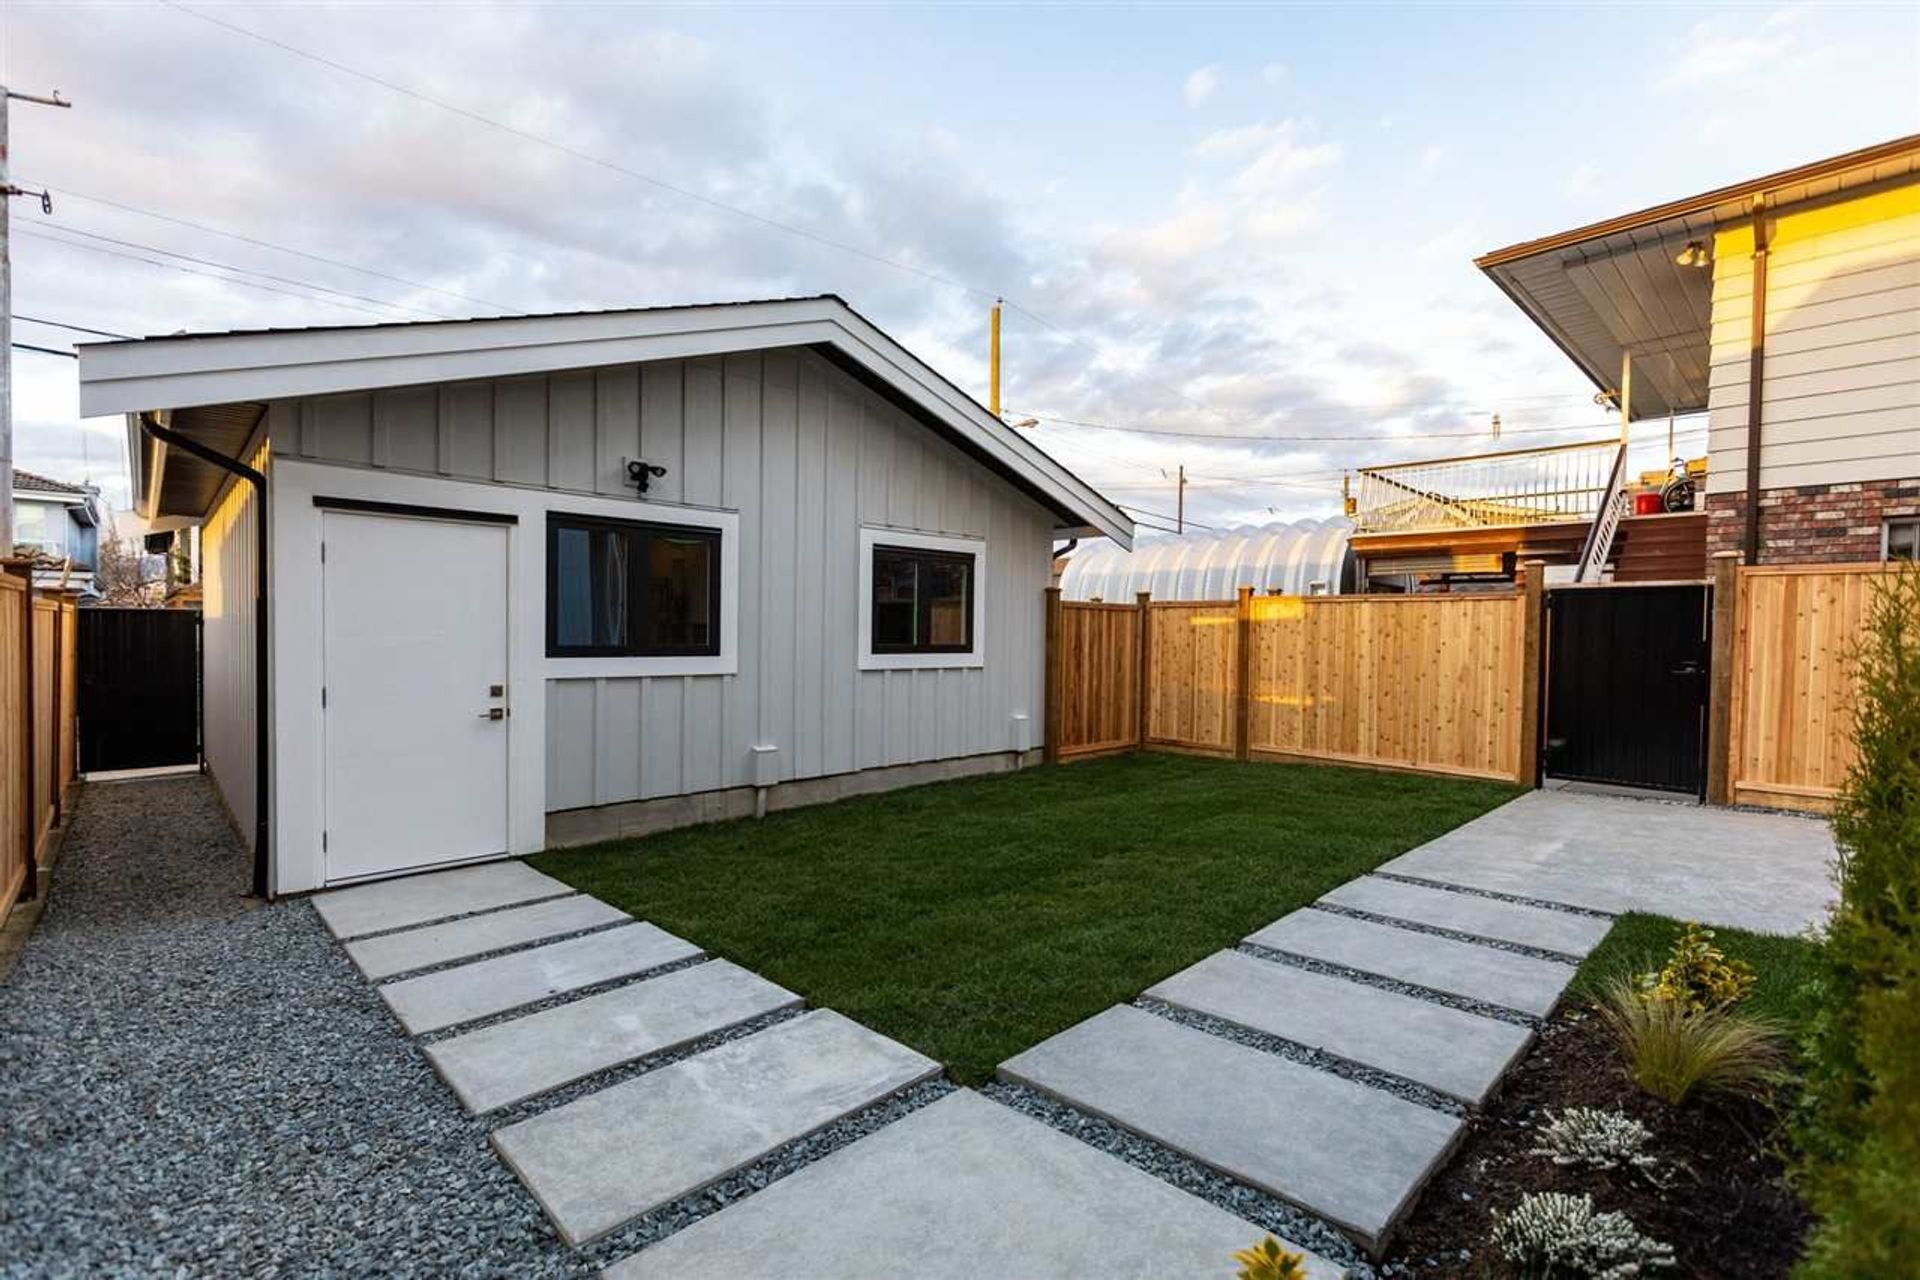 3439-e-24th-avenue-renfrew-heights-vancouver-east-31 at 3439 E 24th Avenue, Renfrew Heights, Vancouver East